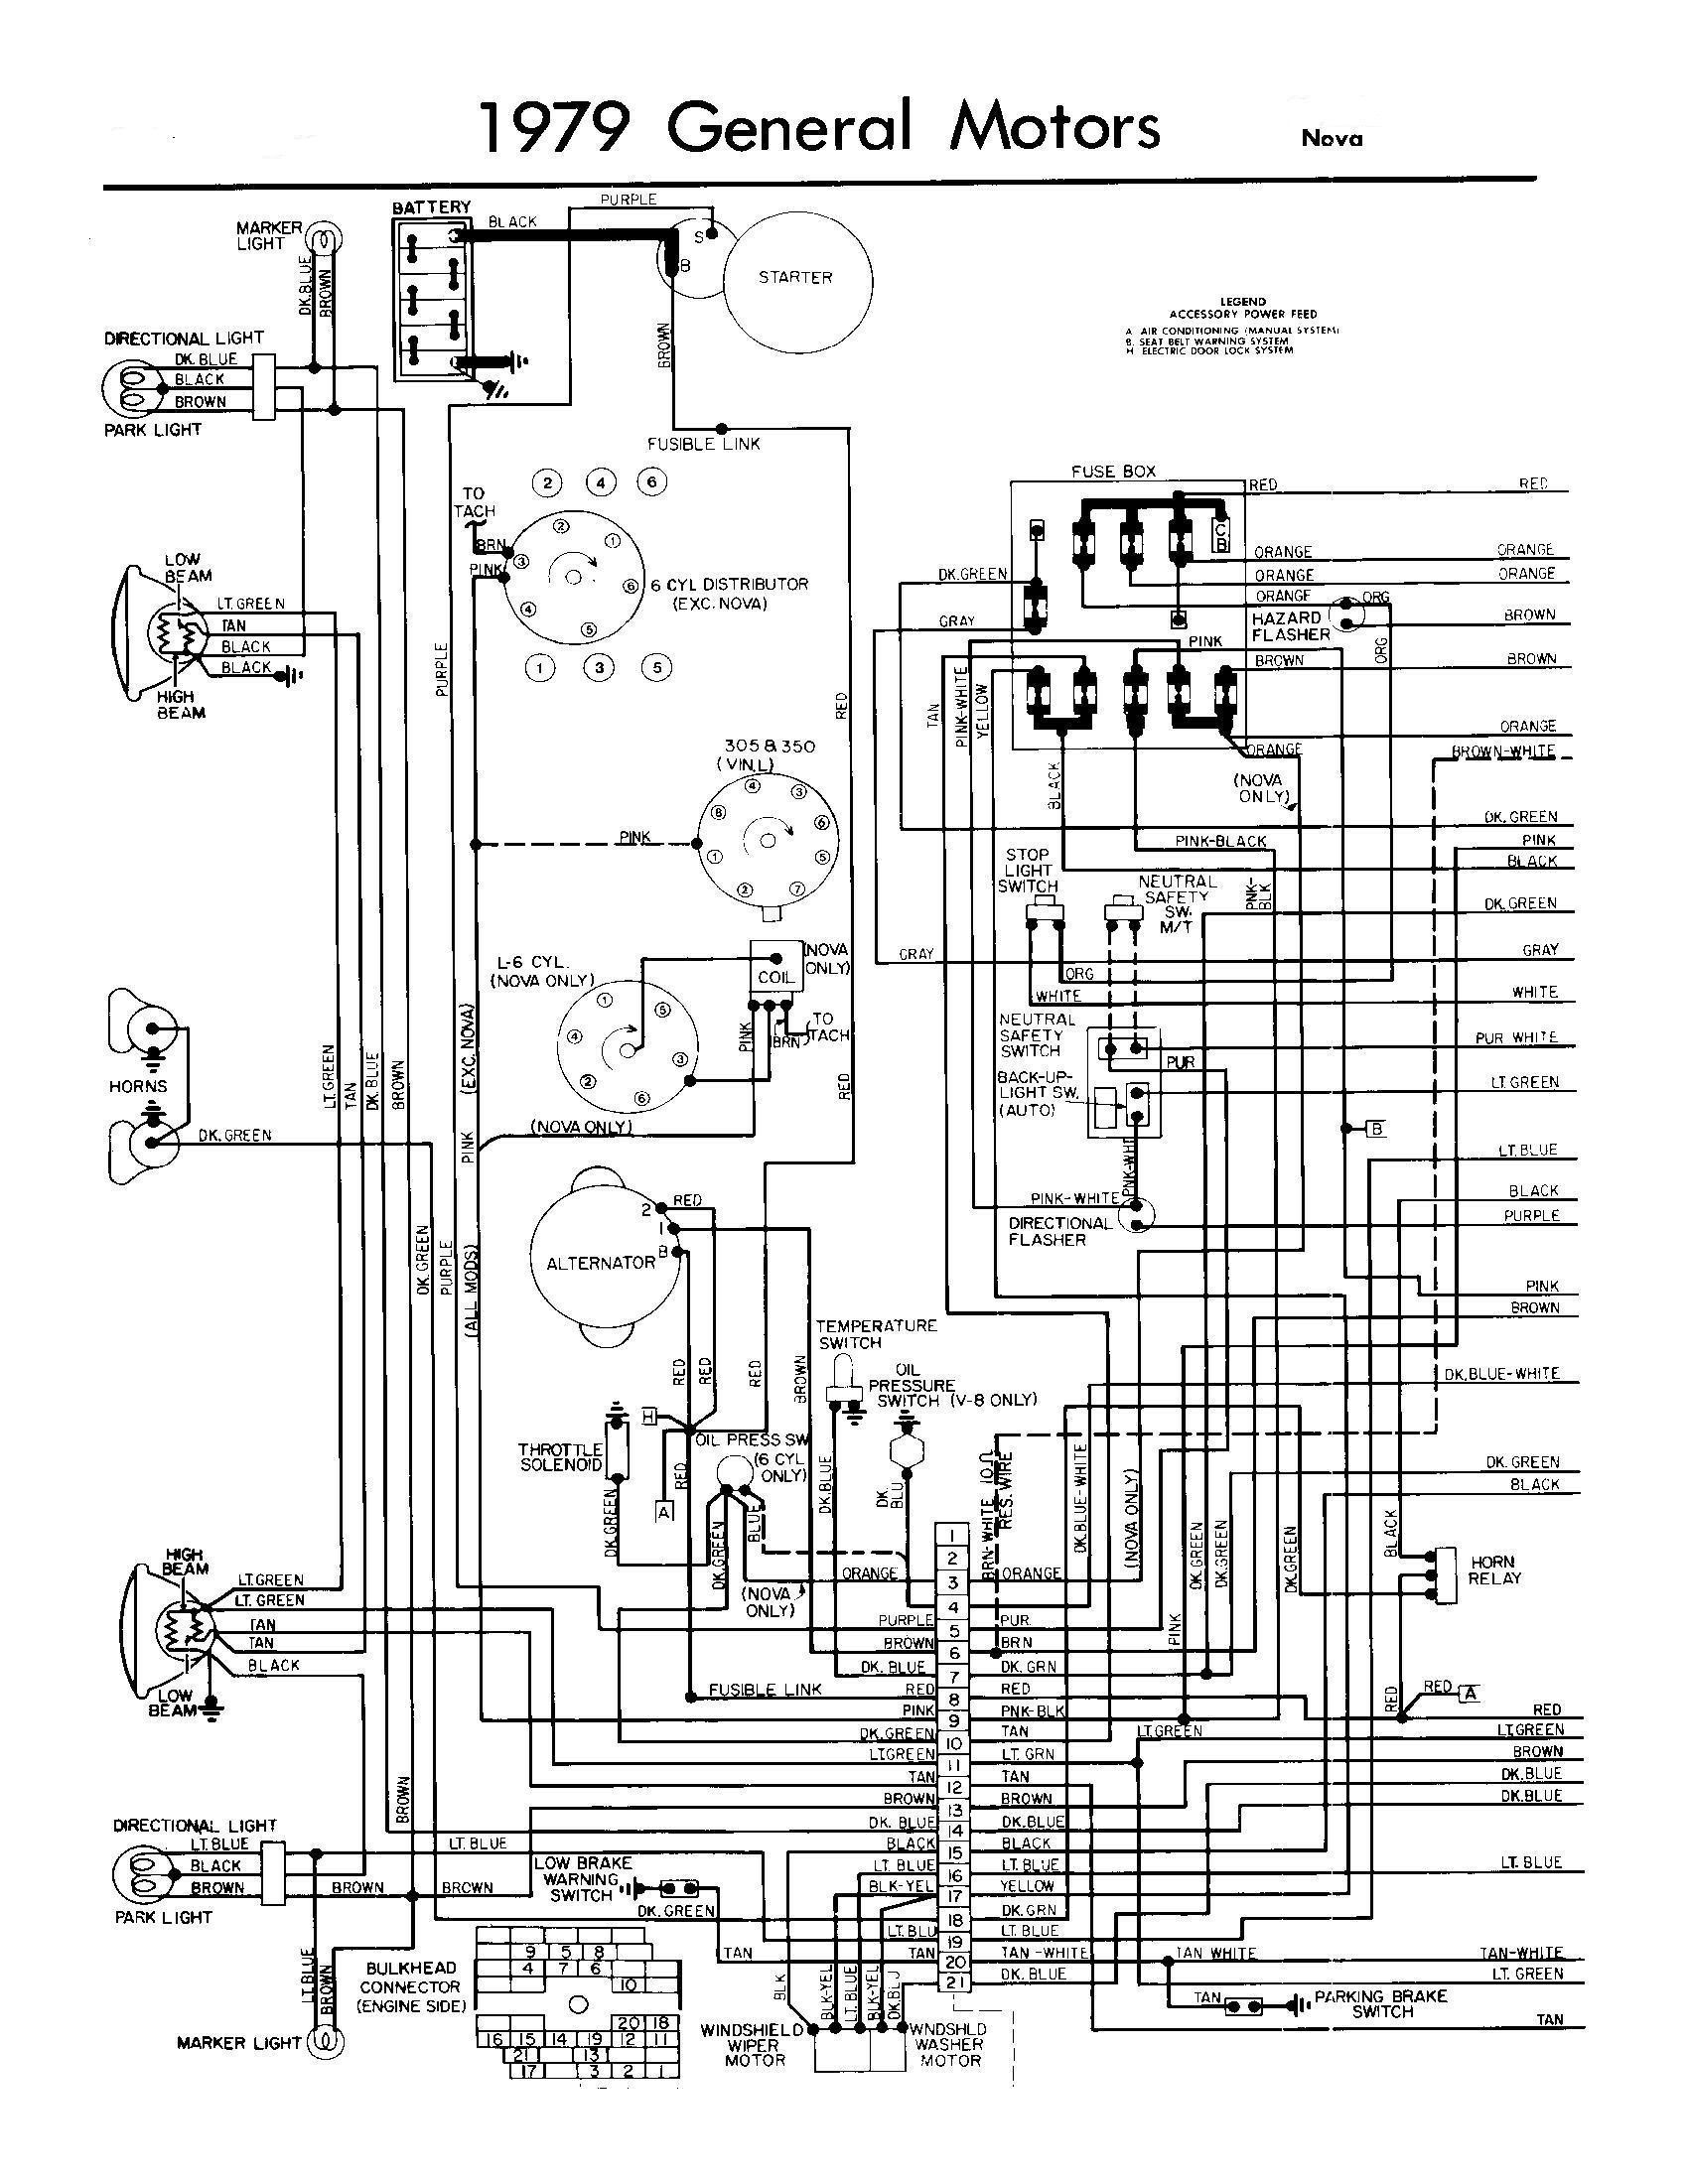 Diagram Of Car Components All Generation Wiring Schematics Chevy Nova forum Of Diagram Of Car Components